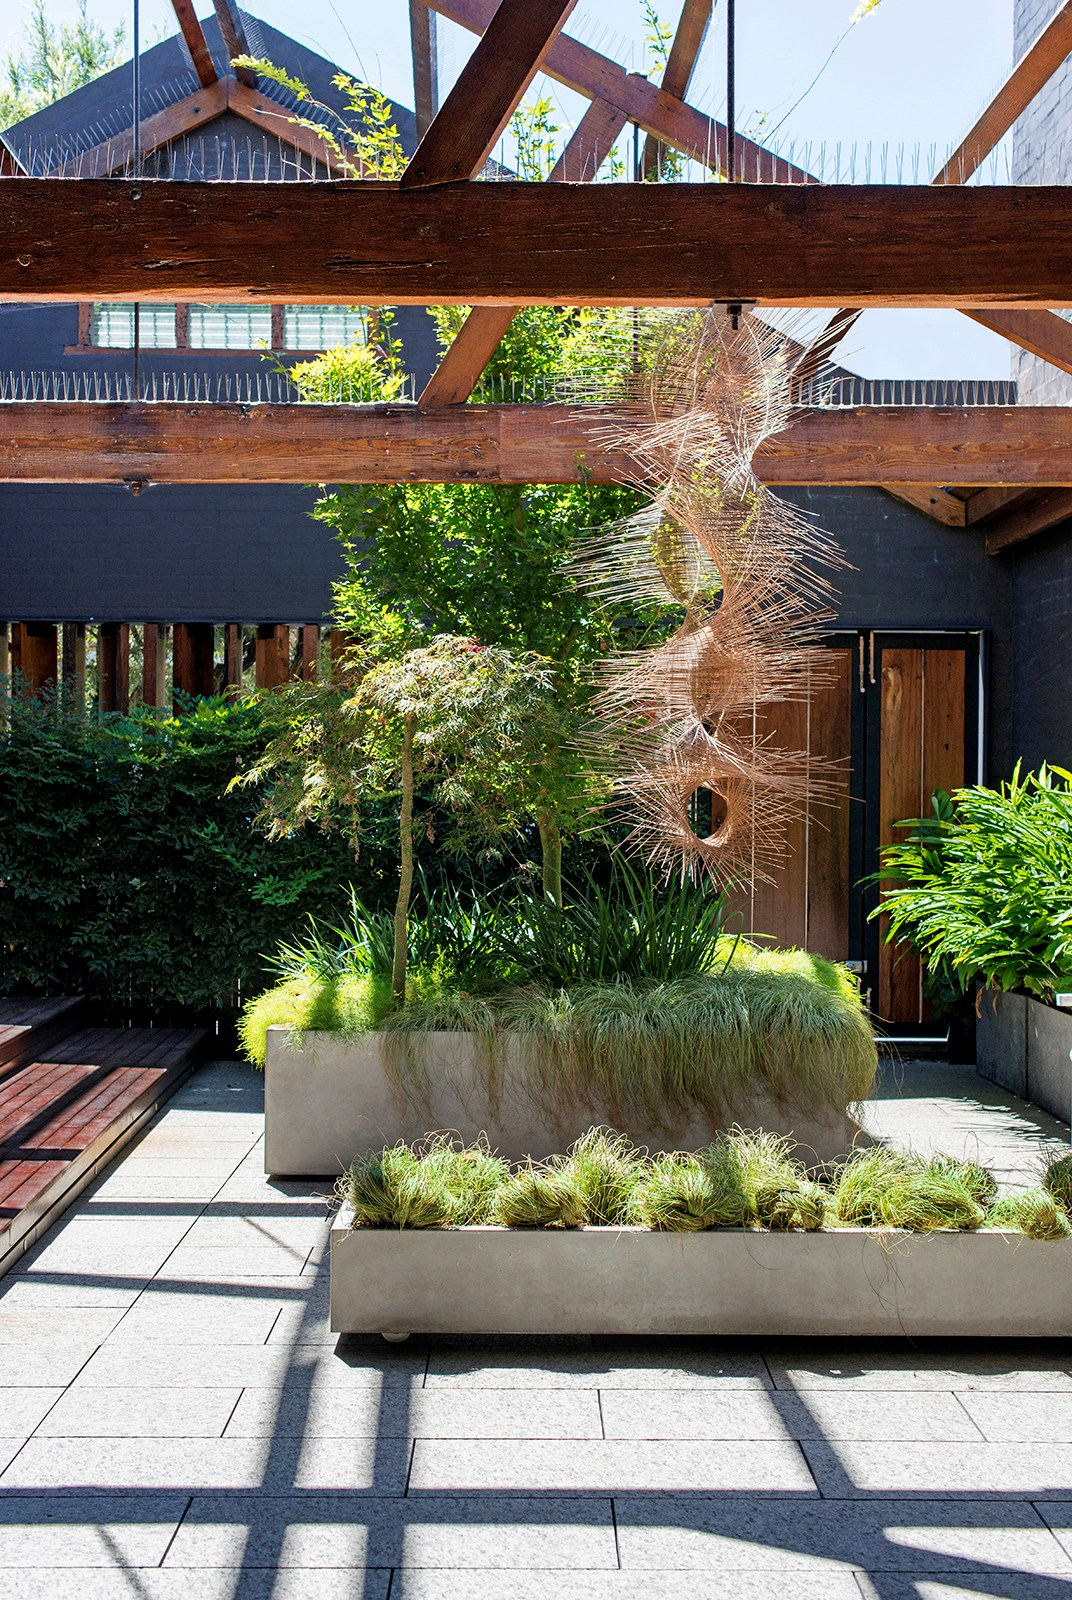 "Landscape designer Richard Unsworth of [Garden Life](http://gardenlife.com.au/|target=""_blank"") created this [lush and serene courtyard and internal atrium](http://www.homestolove.com.au/gallery-industrial-style-urban-courtyard-1573